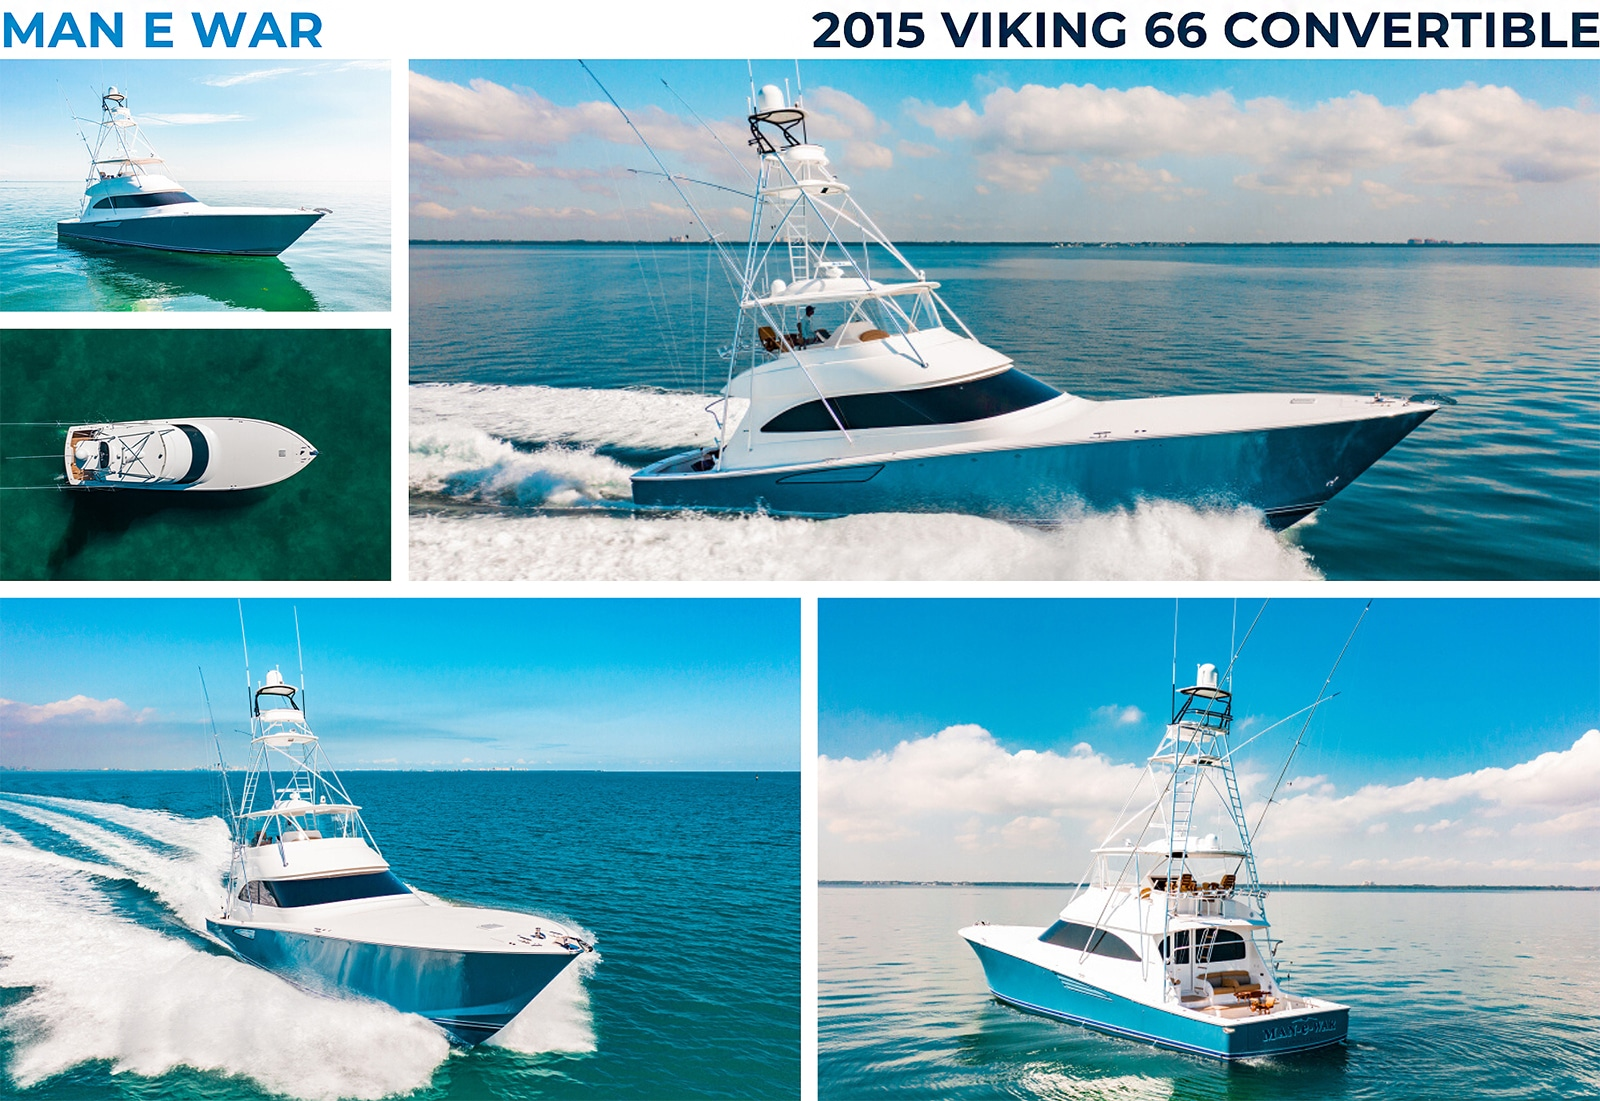 2015 Viking 66 Convertible MAN E WAR